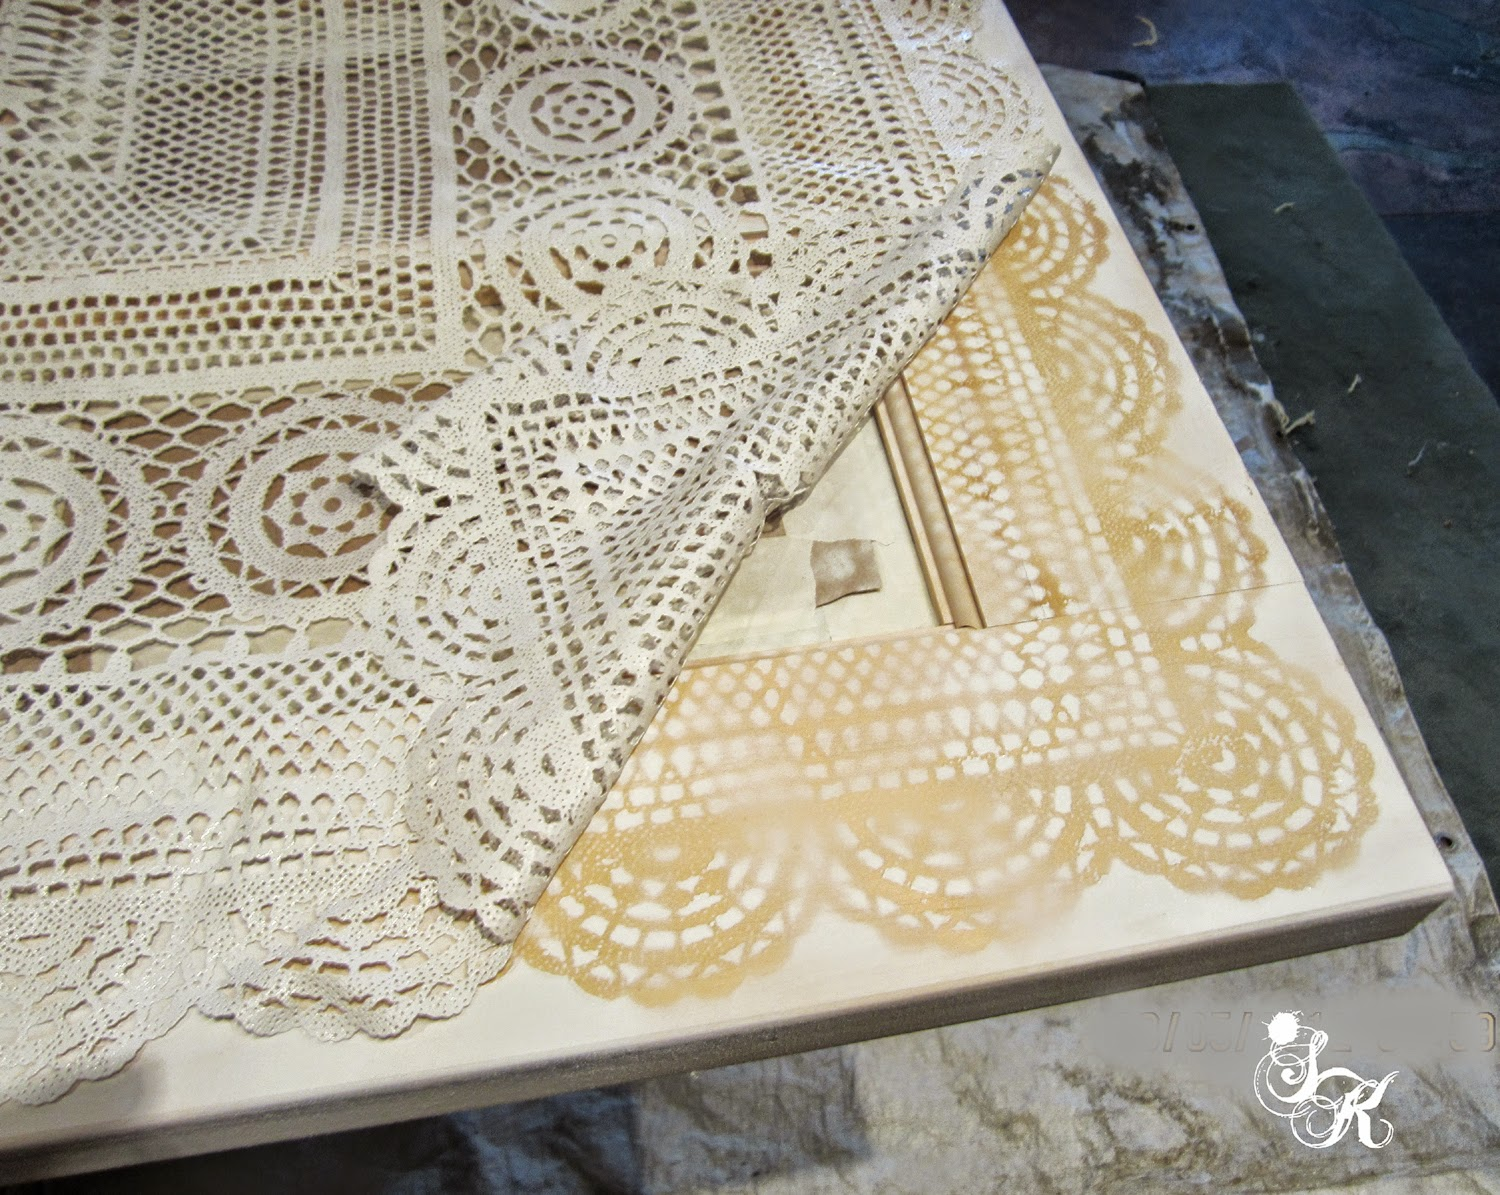 I Spray Painted The Lace With White Enamel.